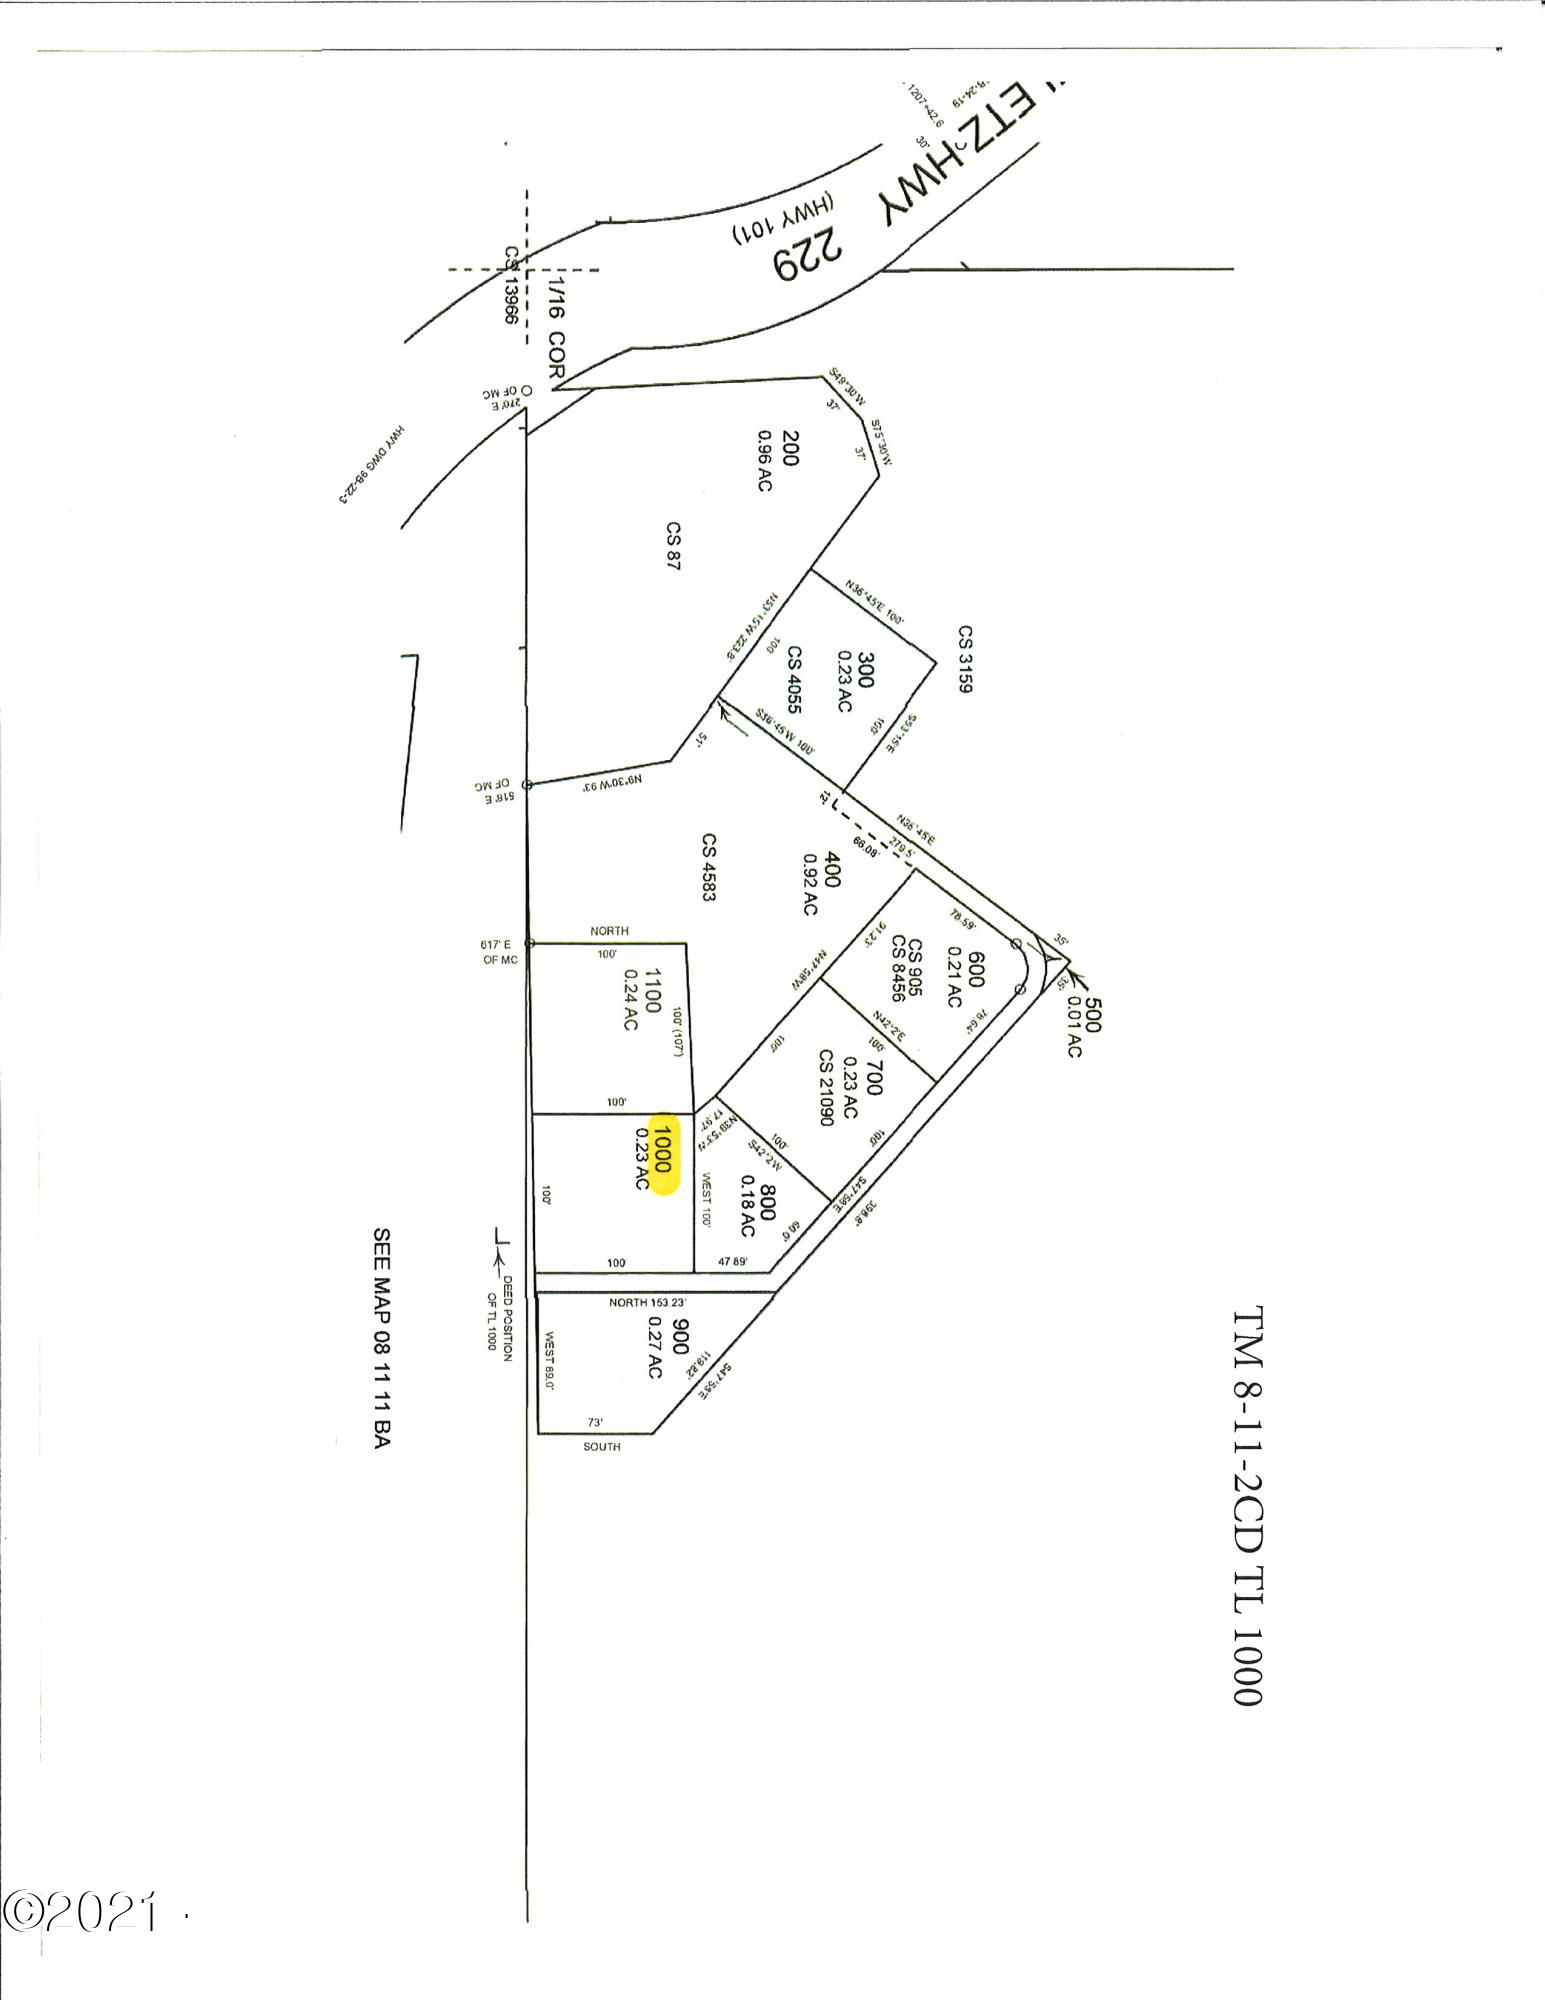 171 Siletz Hwy, Lincoln City, OR 97367 - Plat Map